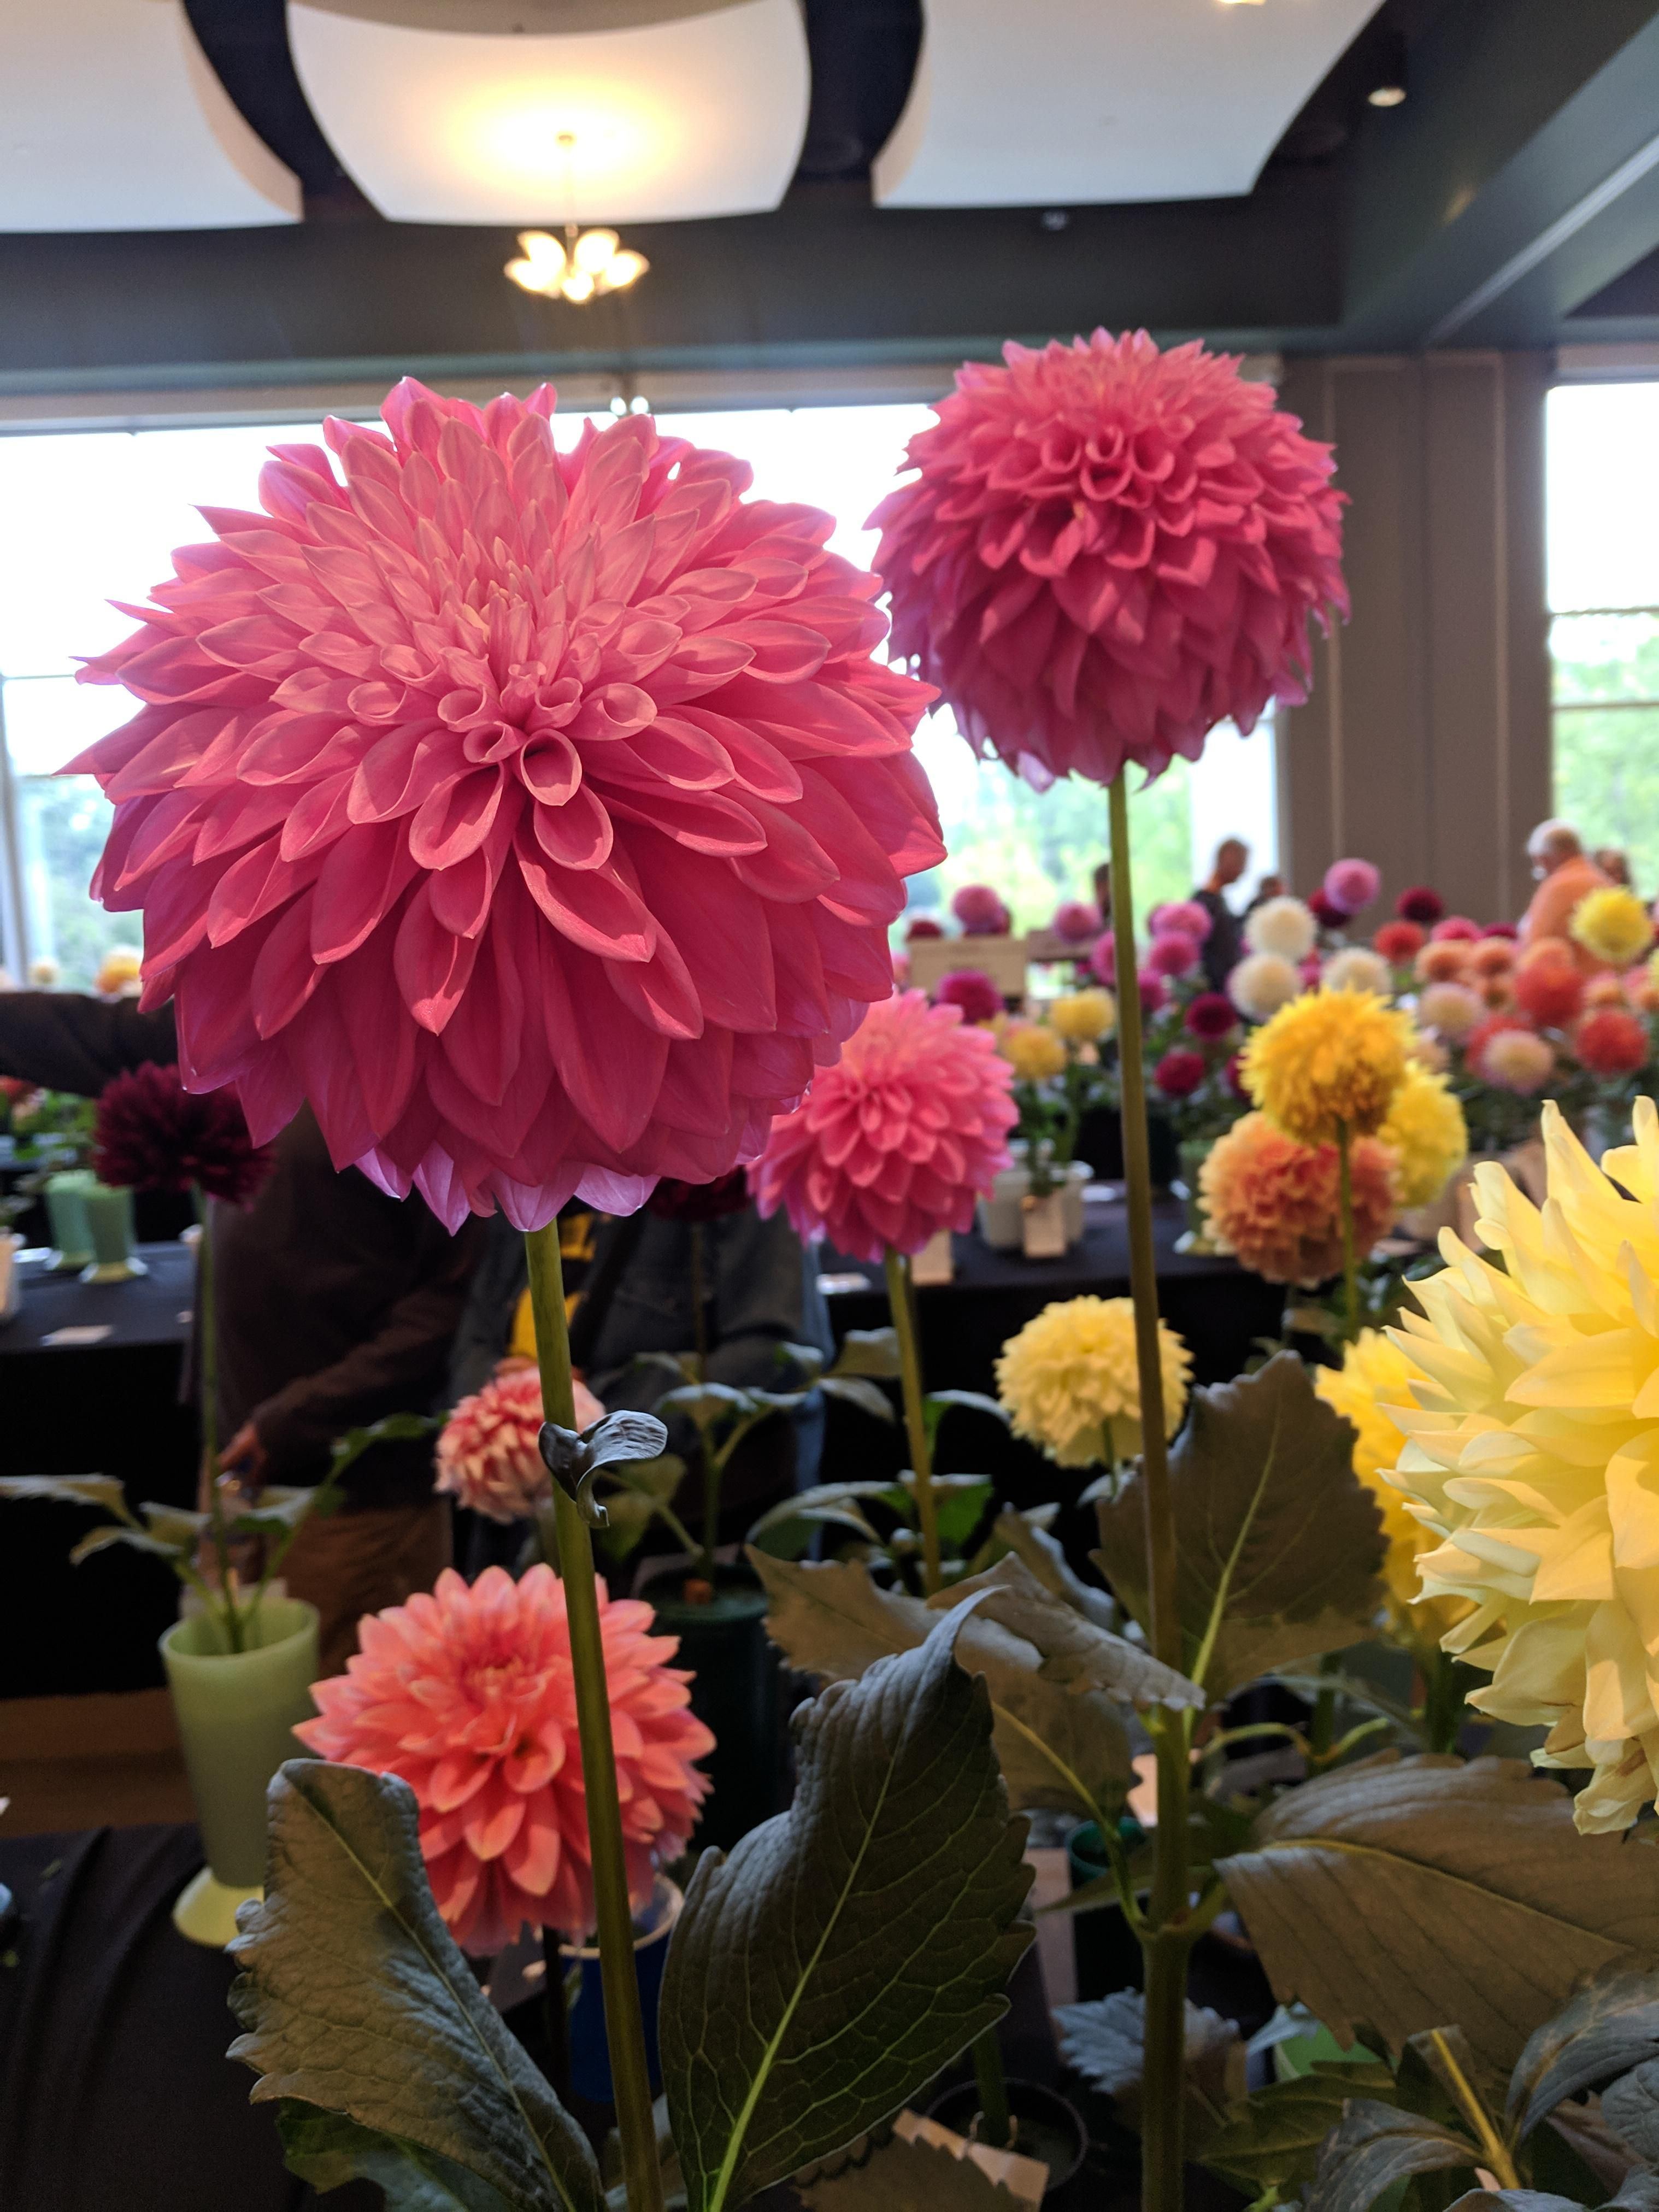 Dahlia Show The Lorax Cross Post From R Flowers Gardening Garden Diy Home Flowers Roses Nature Landscaping Horticulture Flowers The Lorax Dahlia